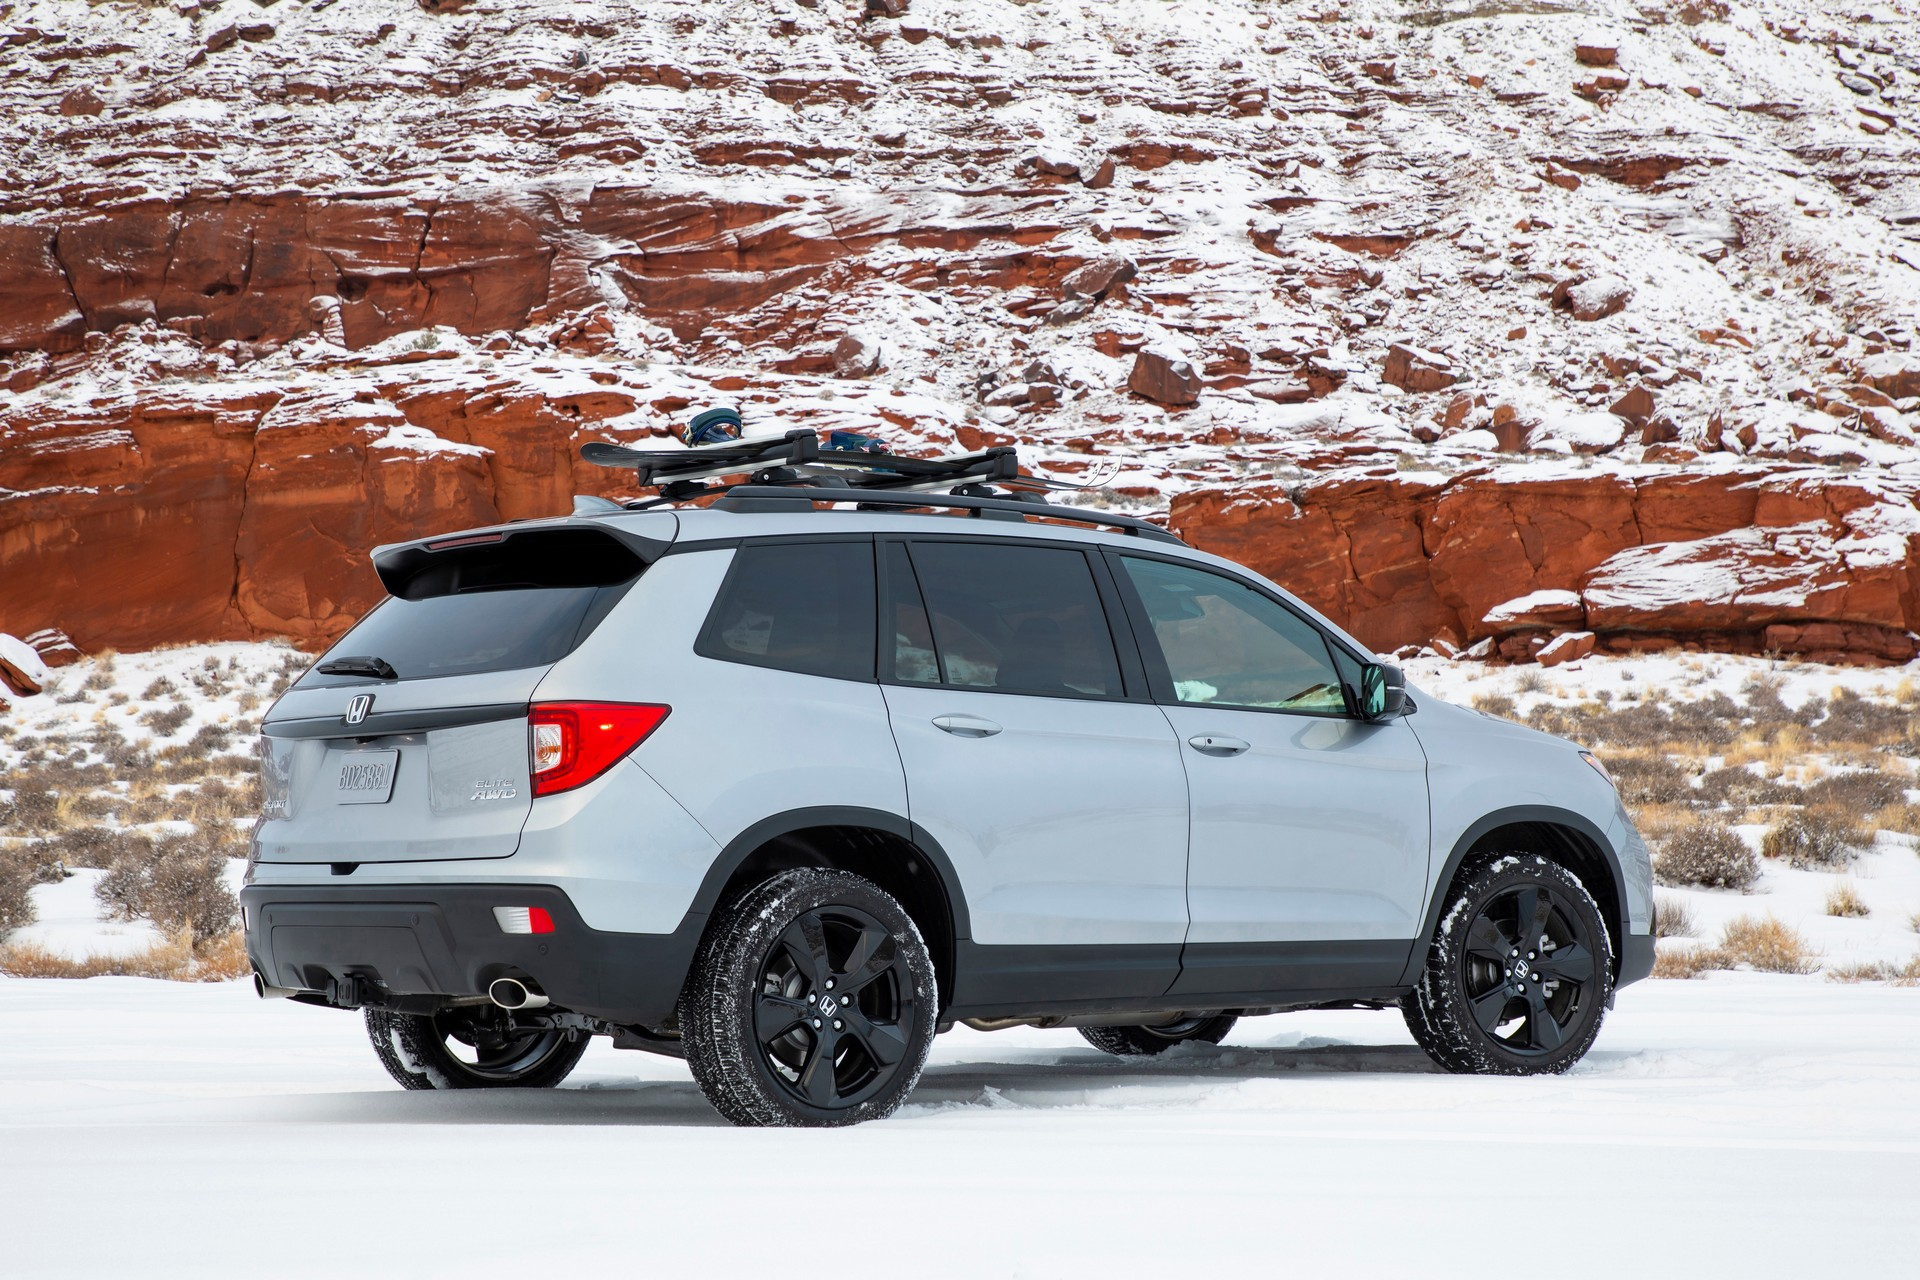 2021-honda-passport-10.jpg